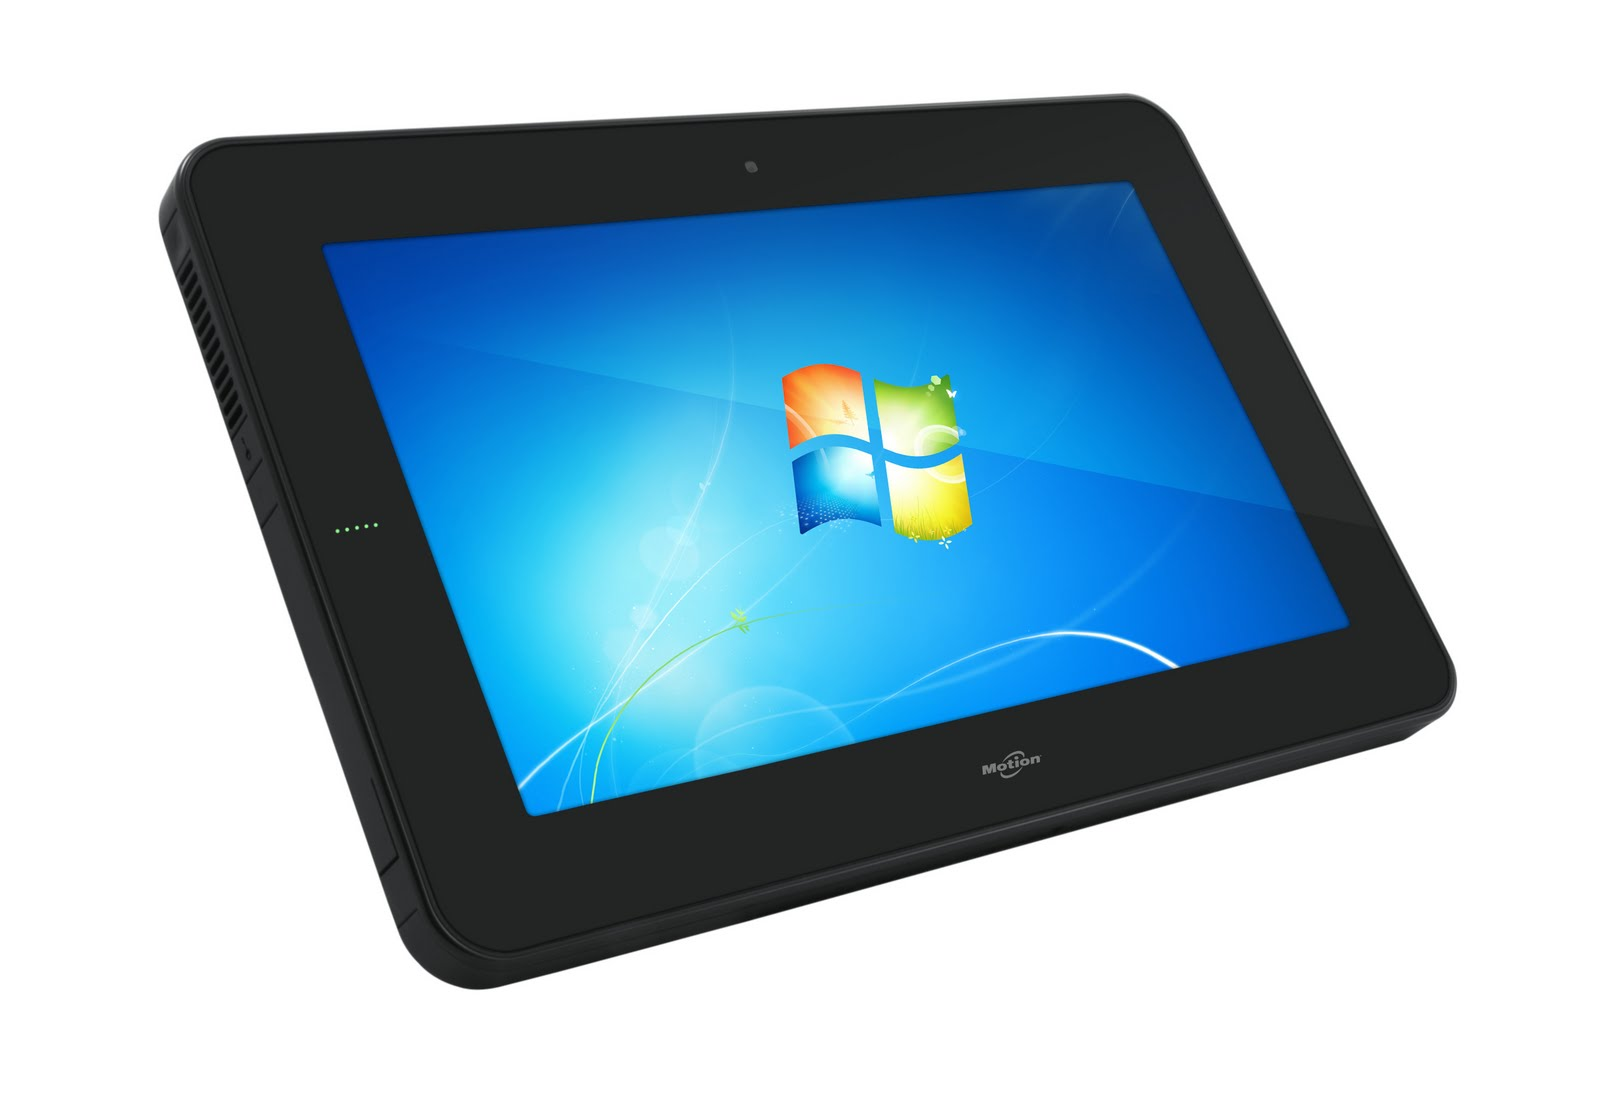 Tablet PC Motion CL900 - Computer Technology